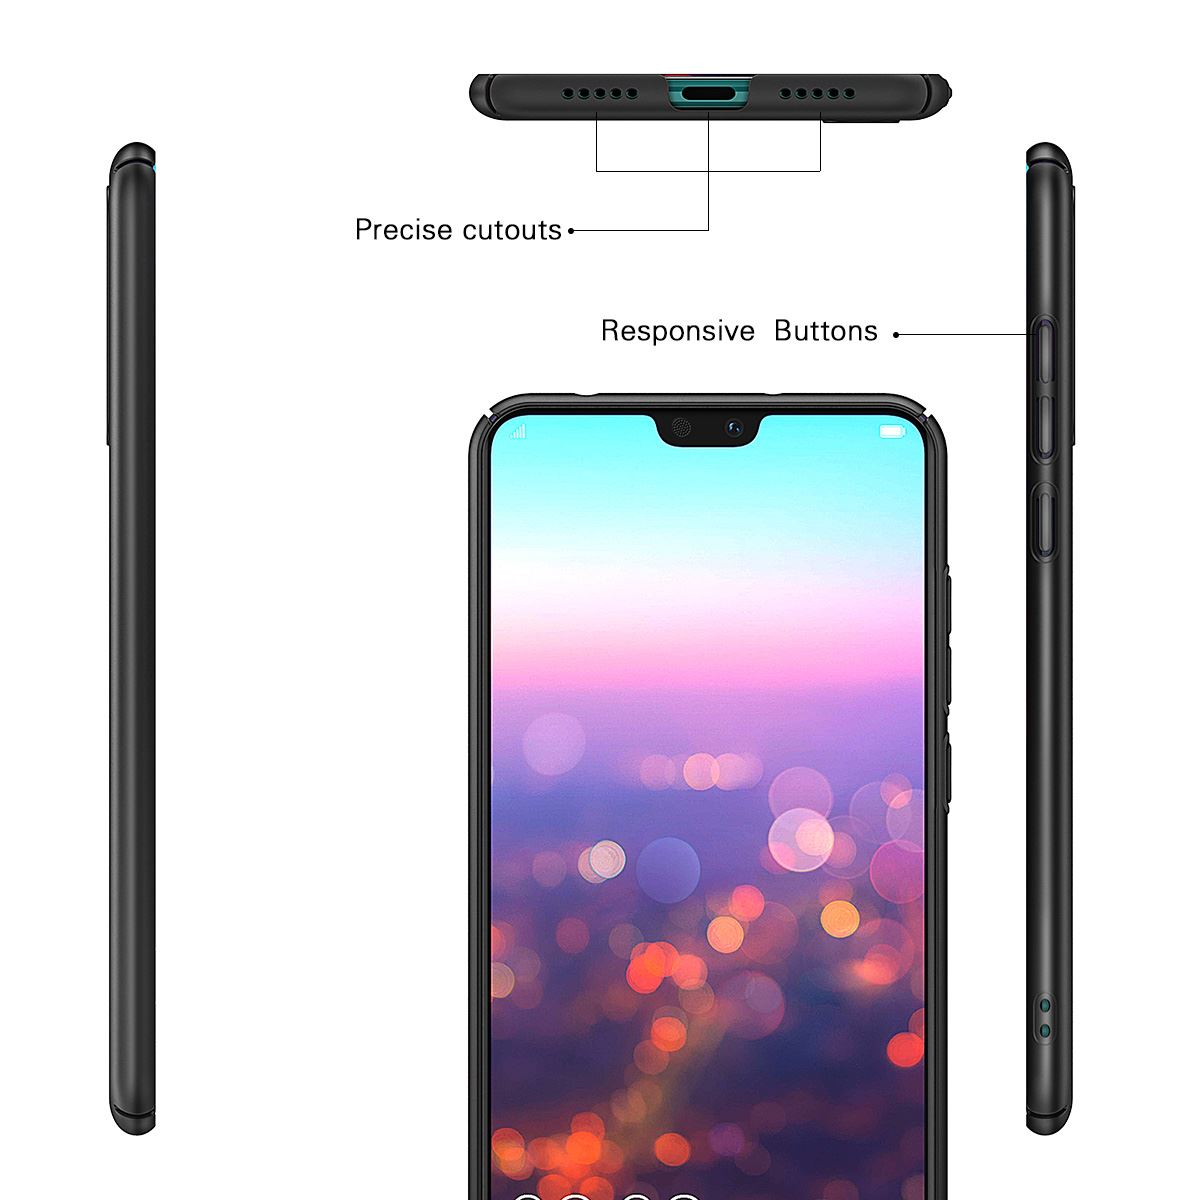 Luxury-Protective-Slim-Thin-Hard-Back-Case-Cover-For-Huawei-P20-Pro-P10-P-Smart thumbnail 18